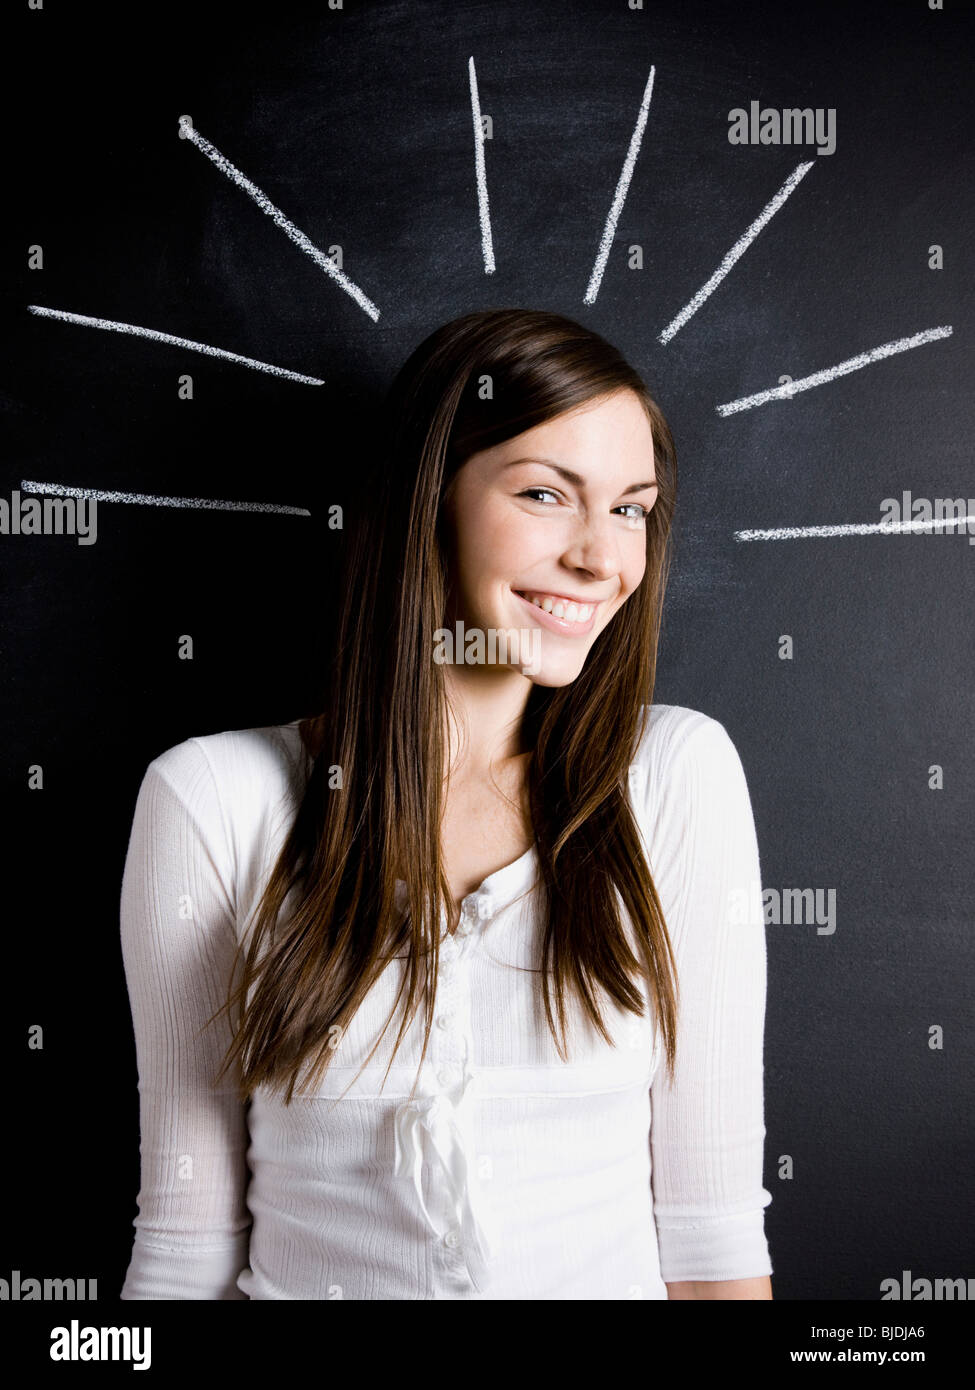 young woman against a chalkboard - Stock Image